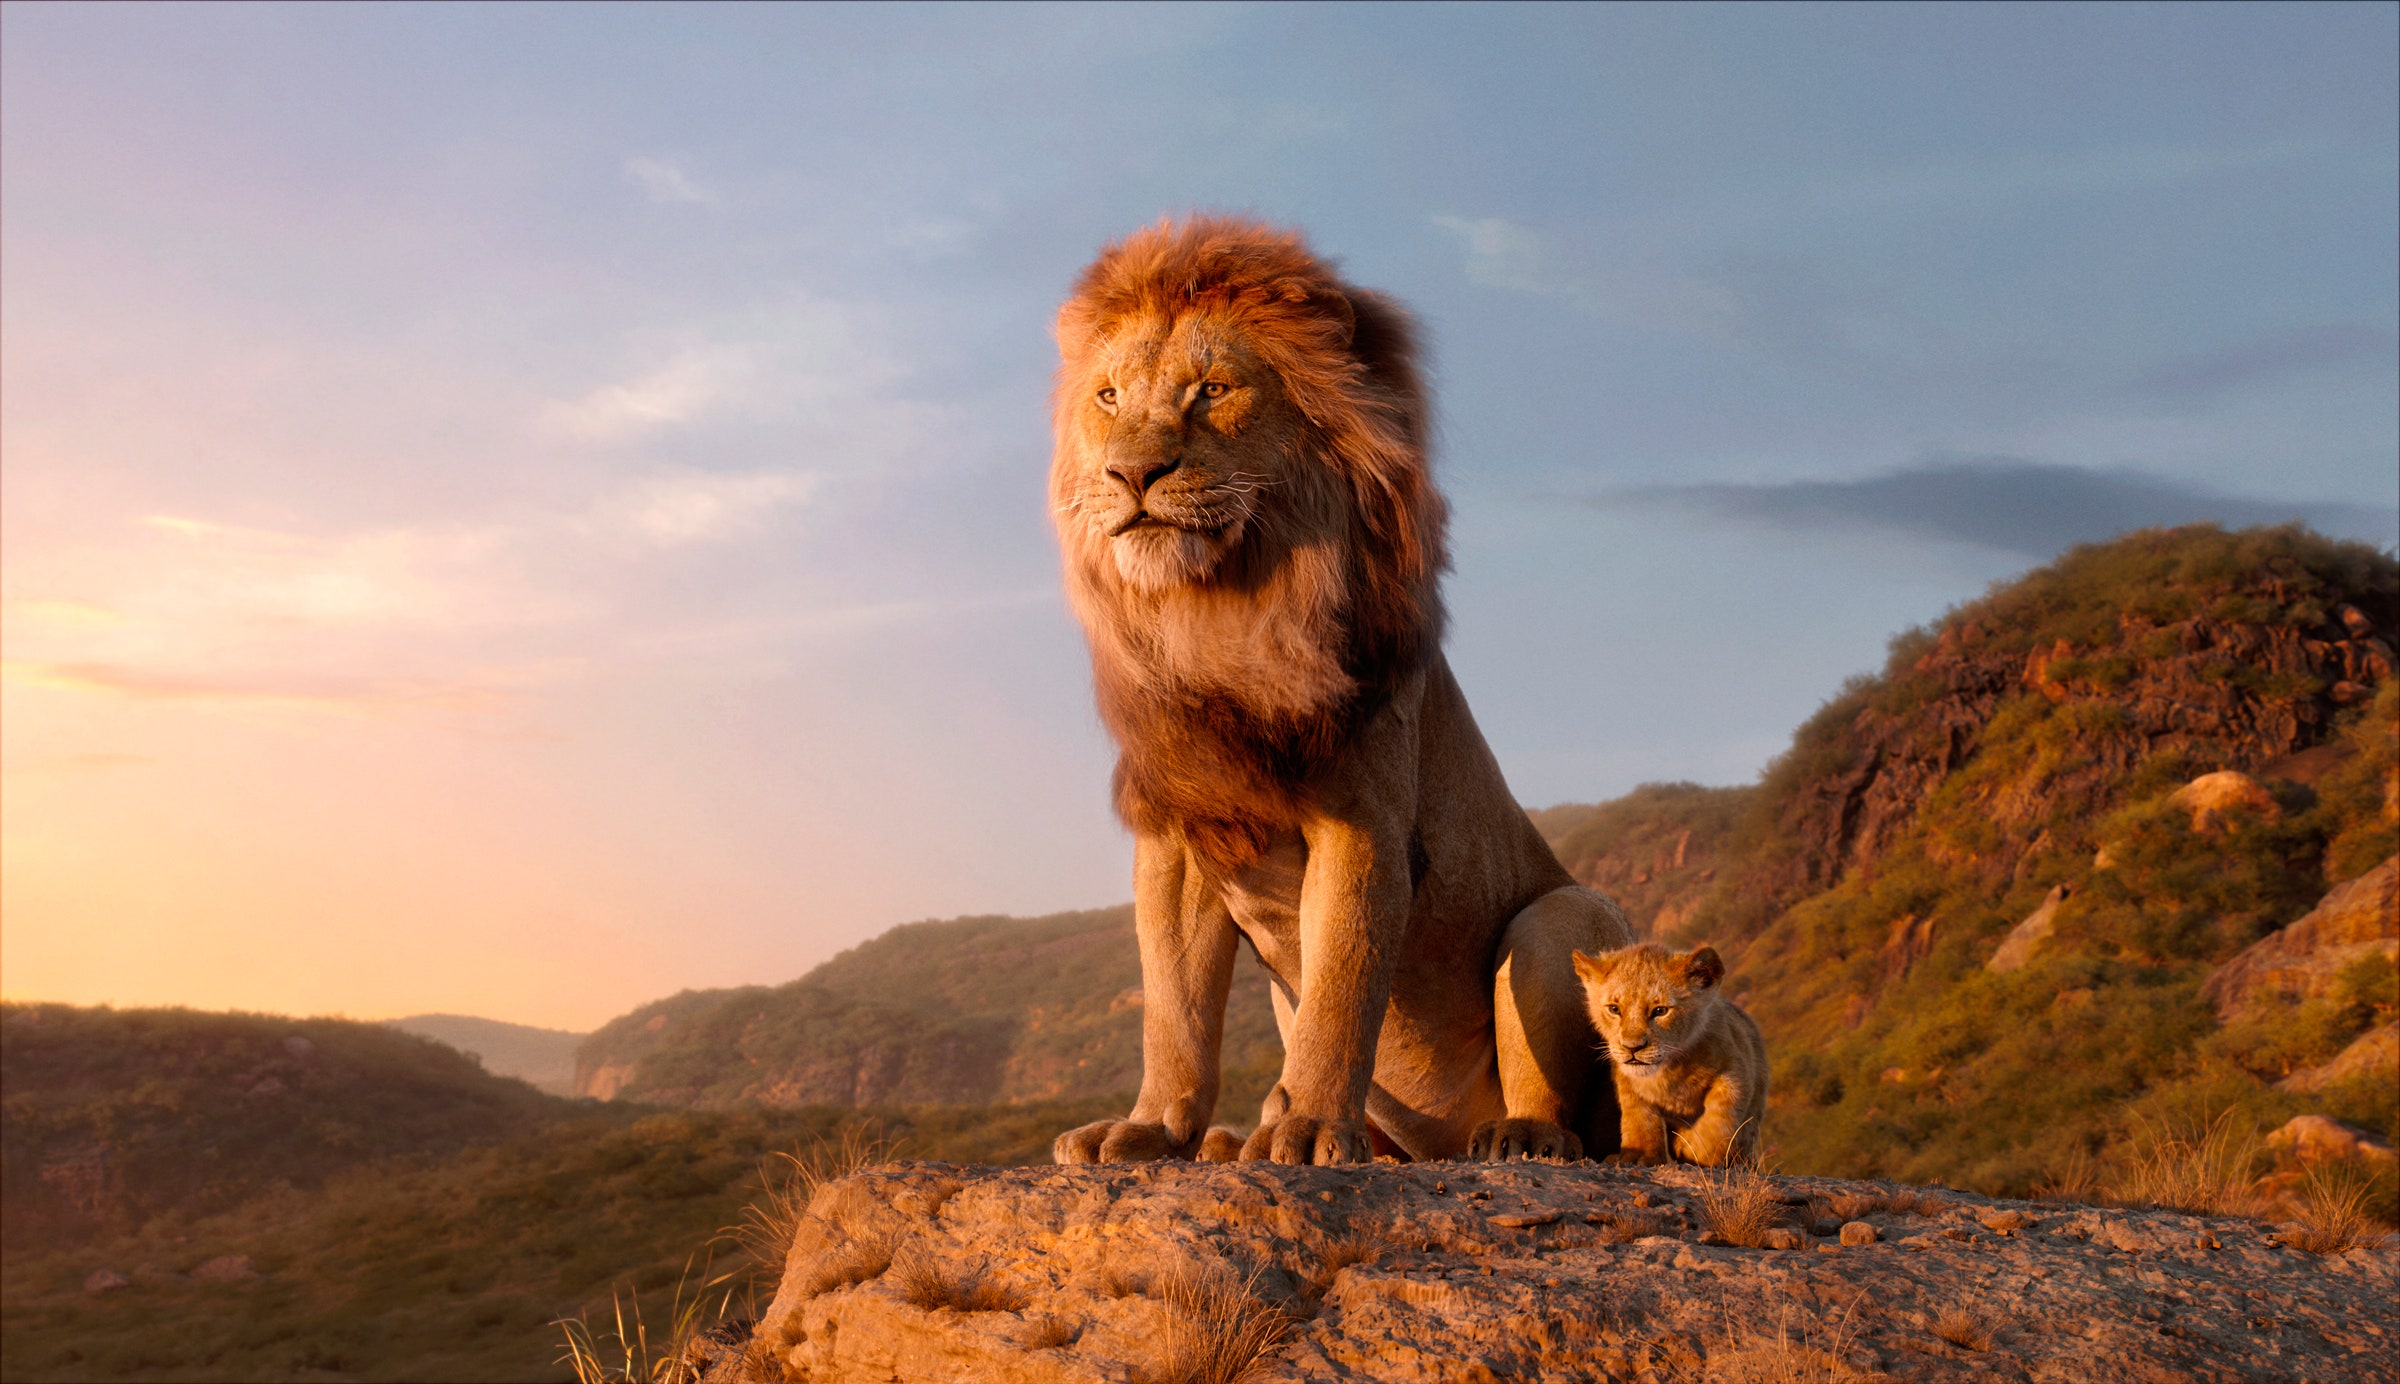 The Lion King Remake Sequel gets a greenlight from Disney